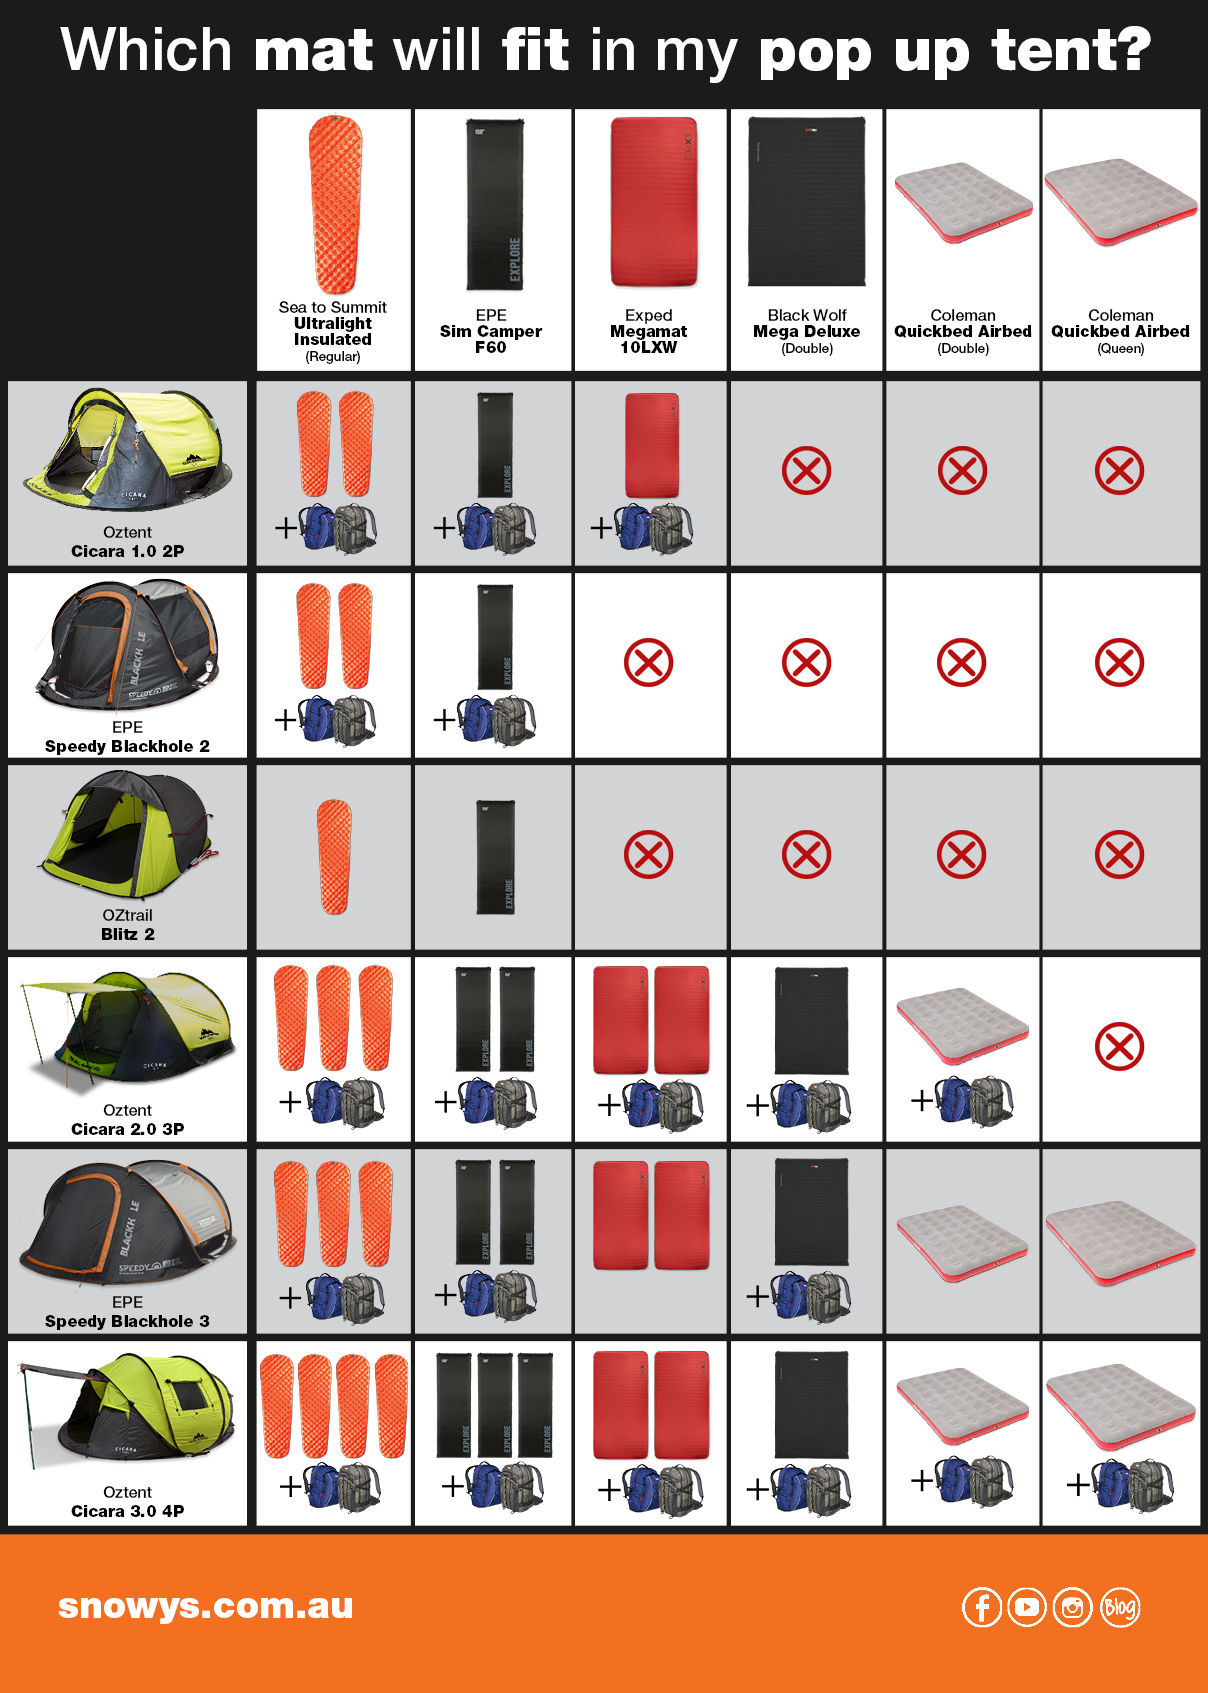 Infographic demonstrating which sleeping mats fit inside certain branded tents.